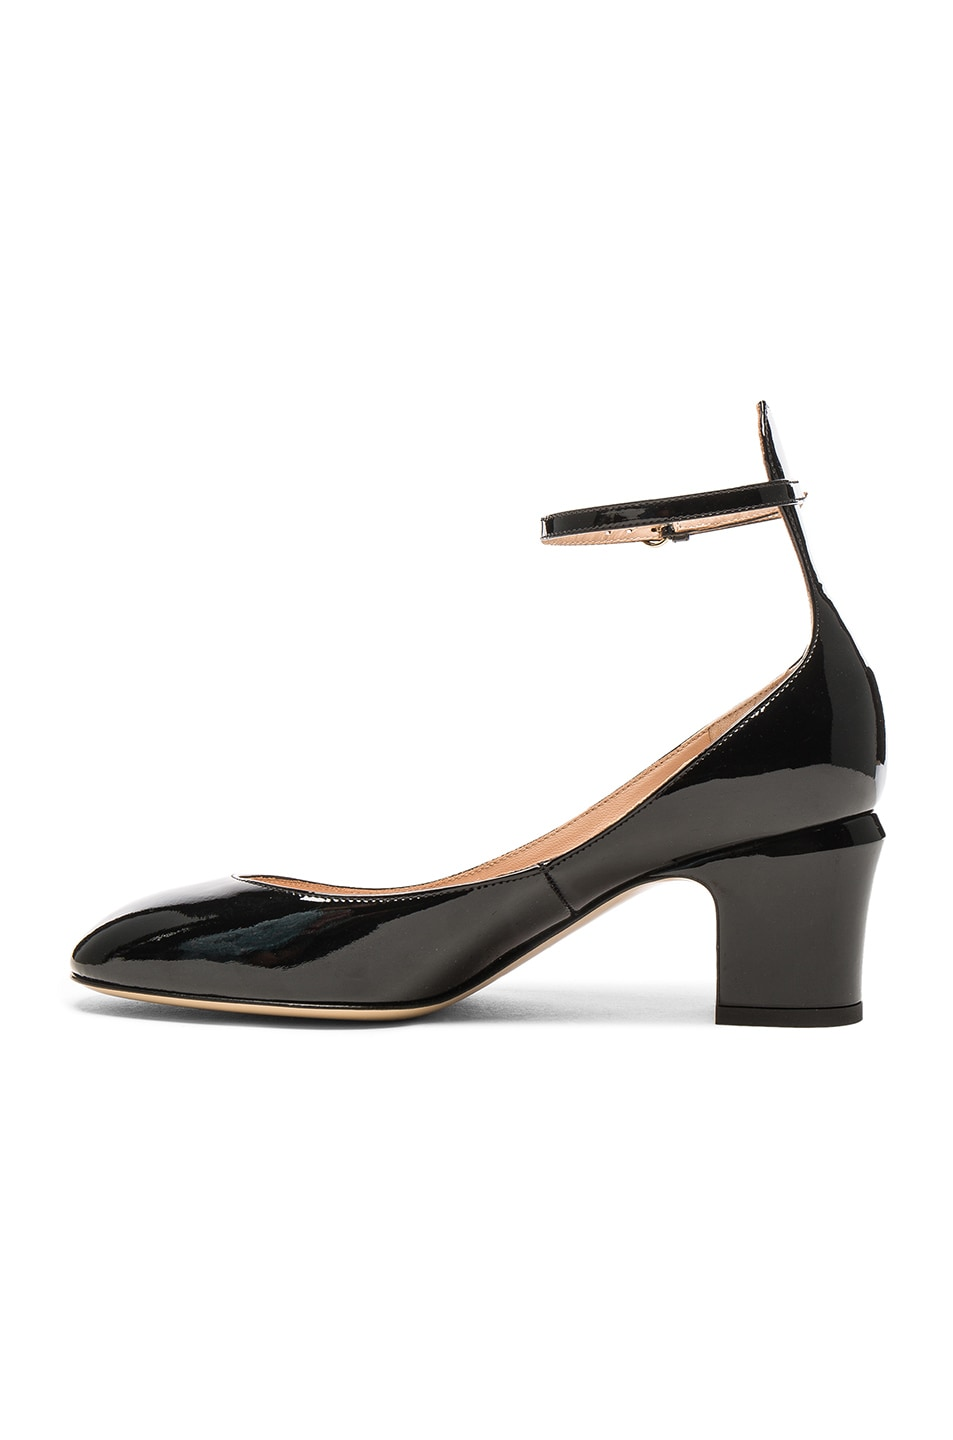 Image 5 of Valentino Patent Leather Tan-Go Pumps in Black